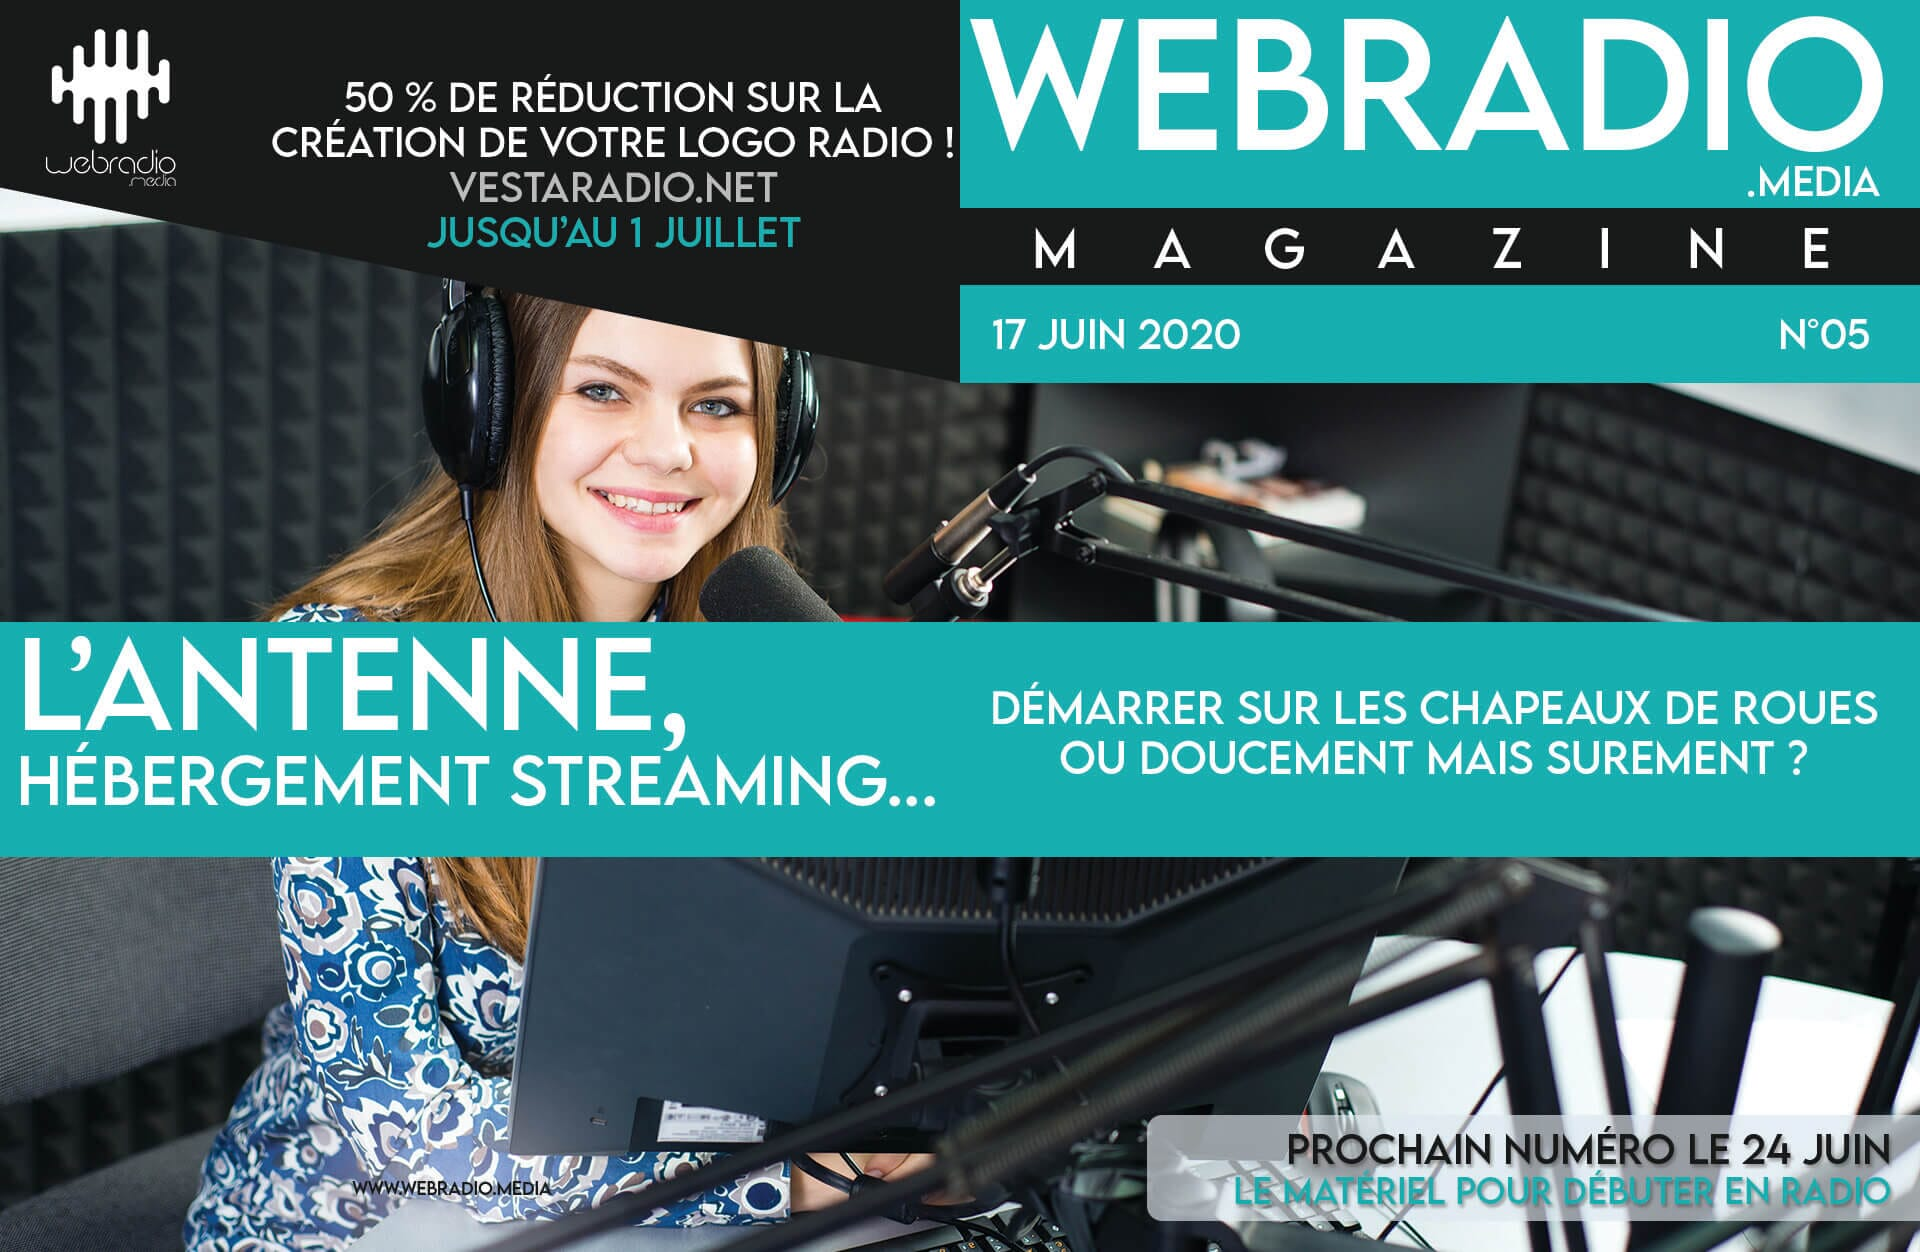 L'antenne, hébergement streaming radio